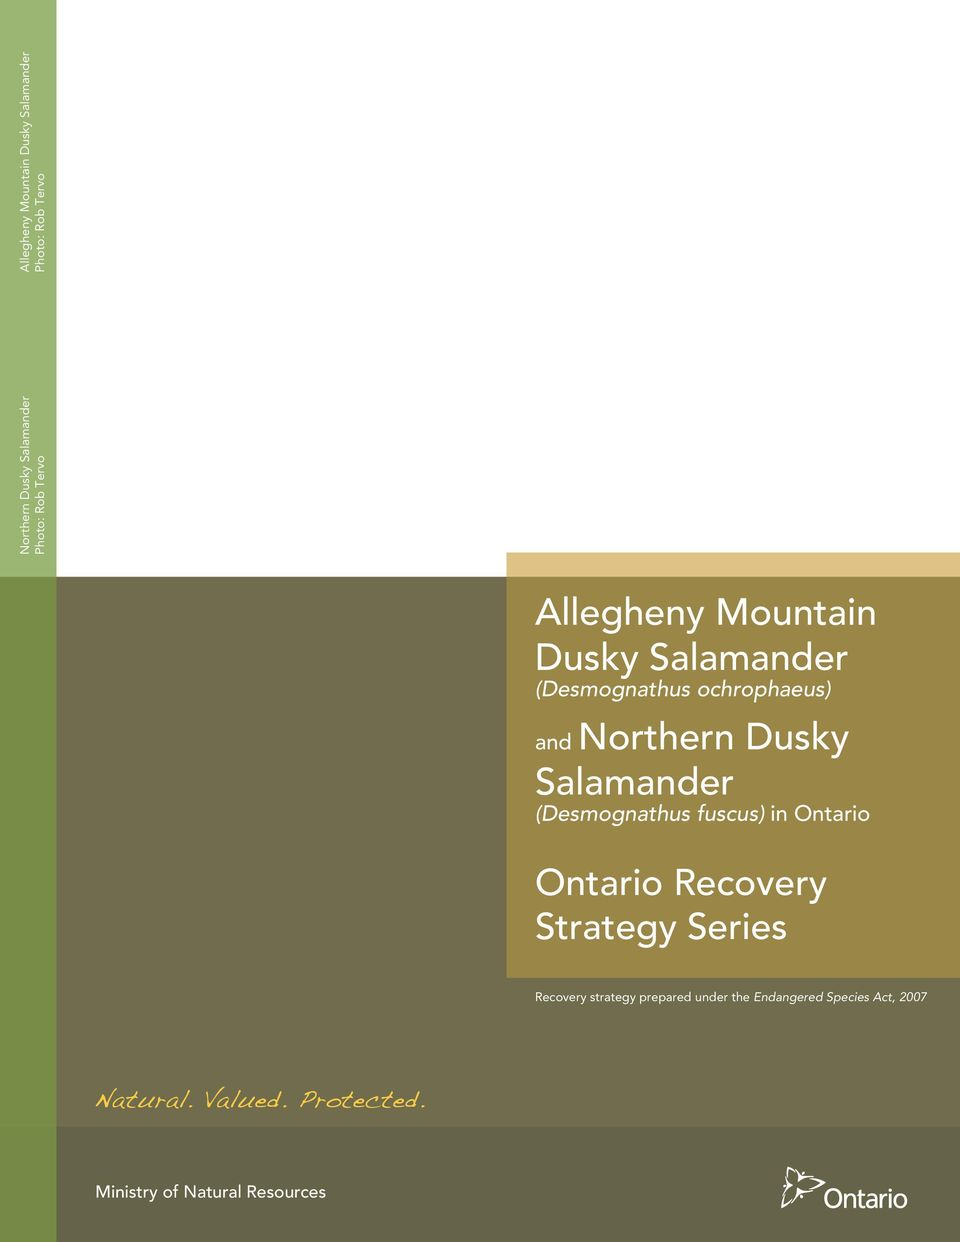 Northern Dusky Salamander (Desmognathus fuscus) Ontario Recovery Strategy Series